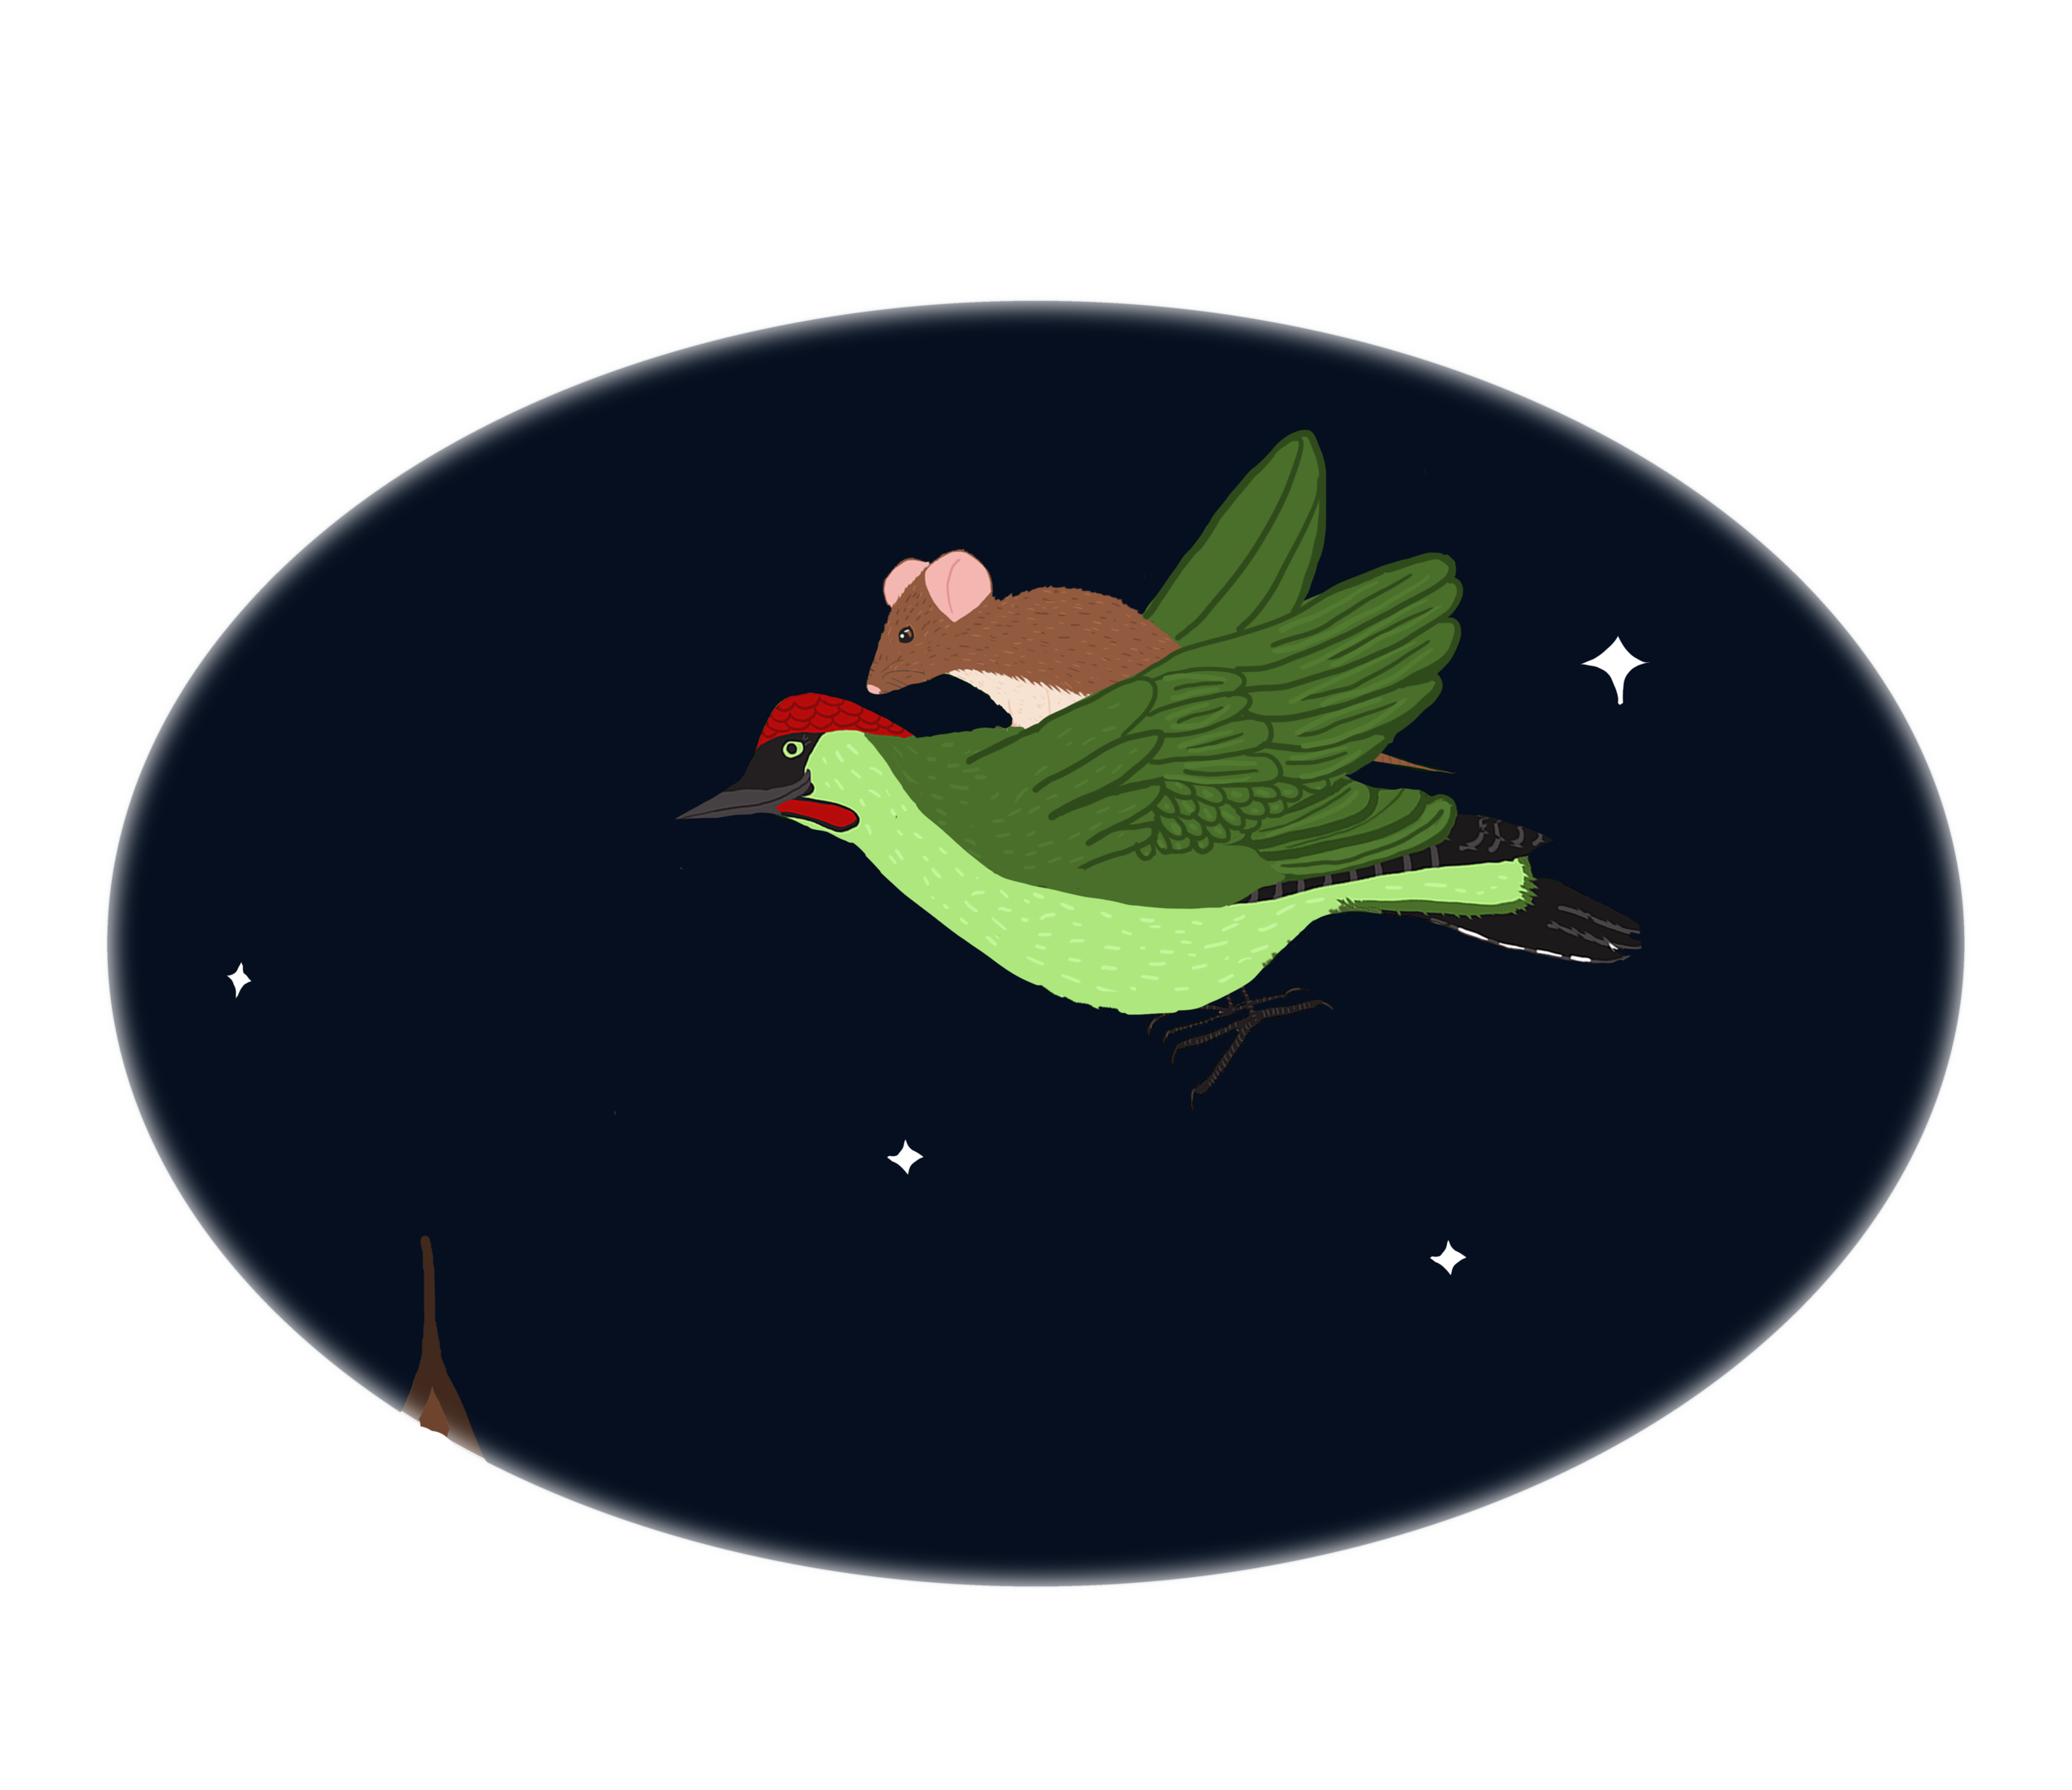 squarespacemousepecker.png